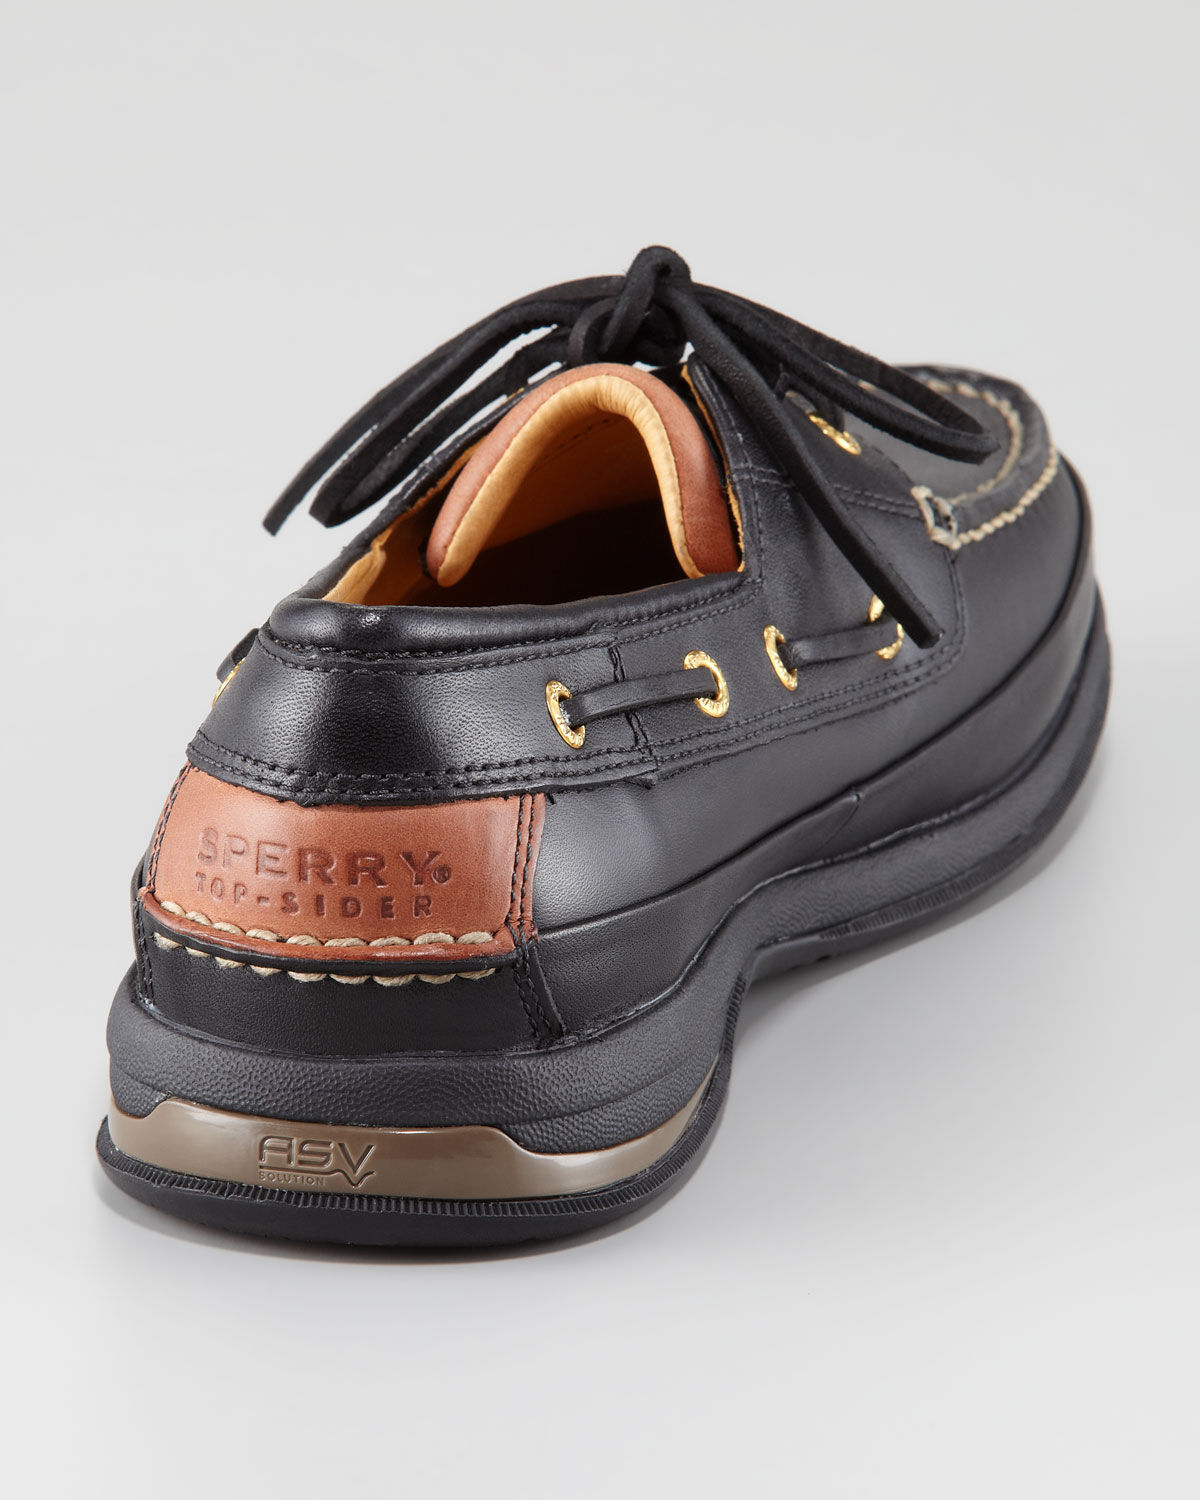 Sperry Top-Sider Gold Cup Asv Twoeye